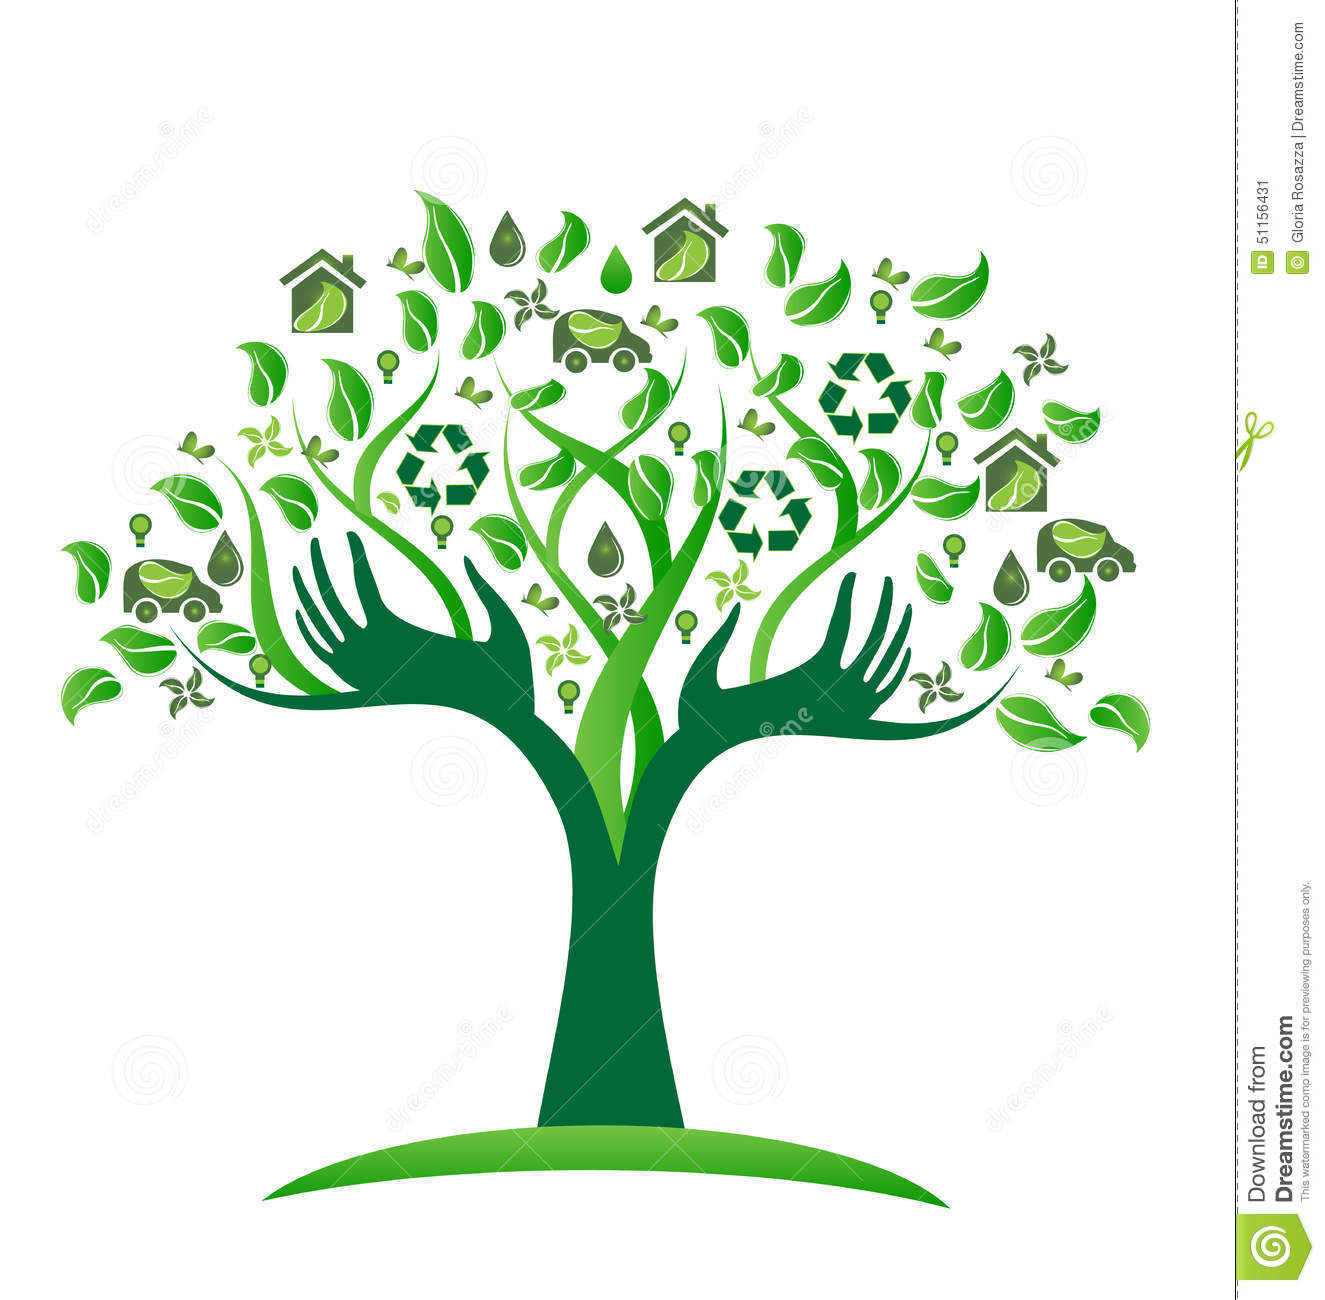 Audio Car Wallpaper Download Ecology Green Icons Tree With Hands Logo Vector Stock